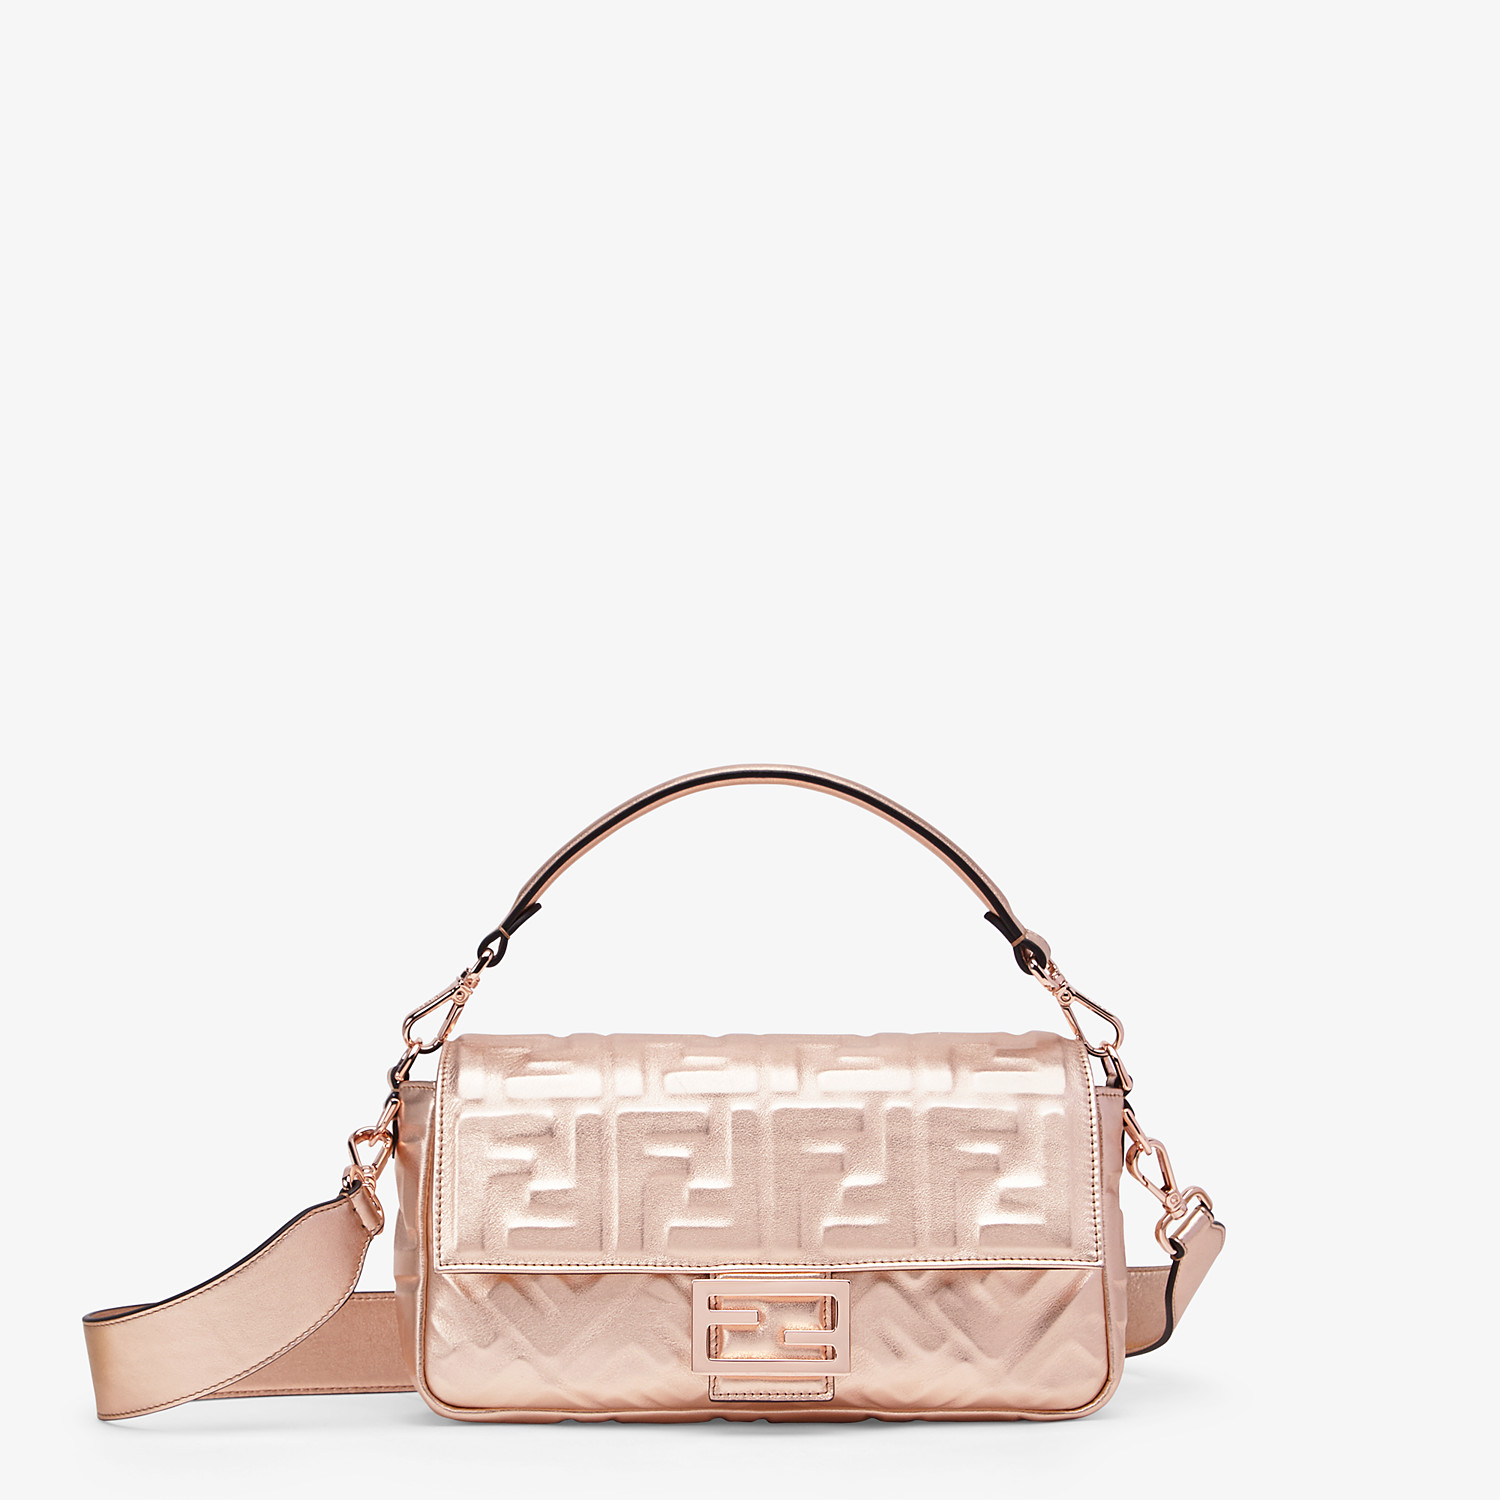 FENDI BAGUETTE - Pink leather bag - view 1 detail